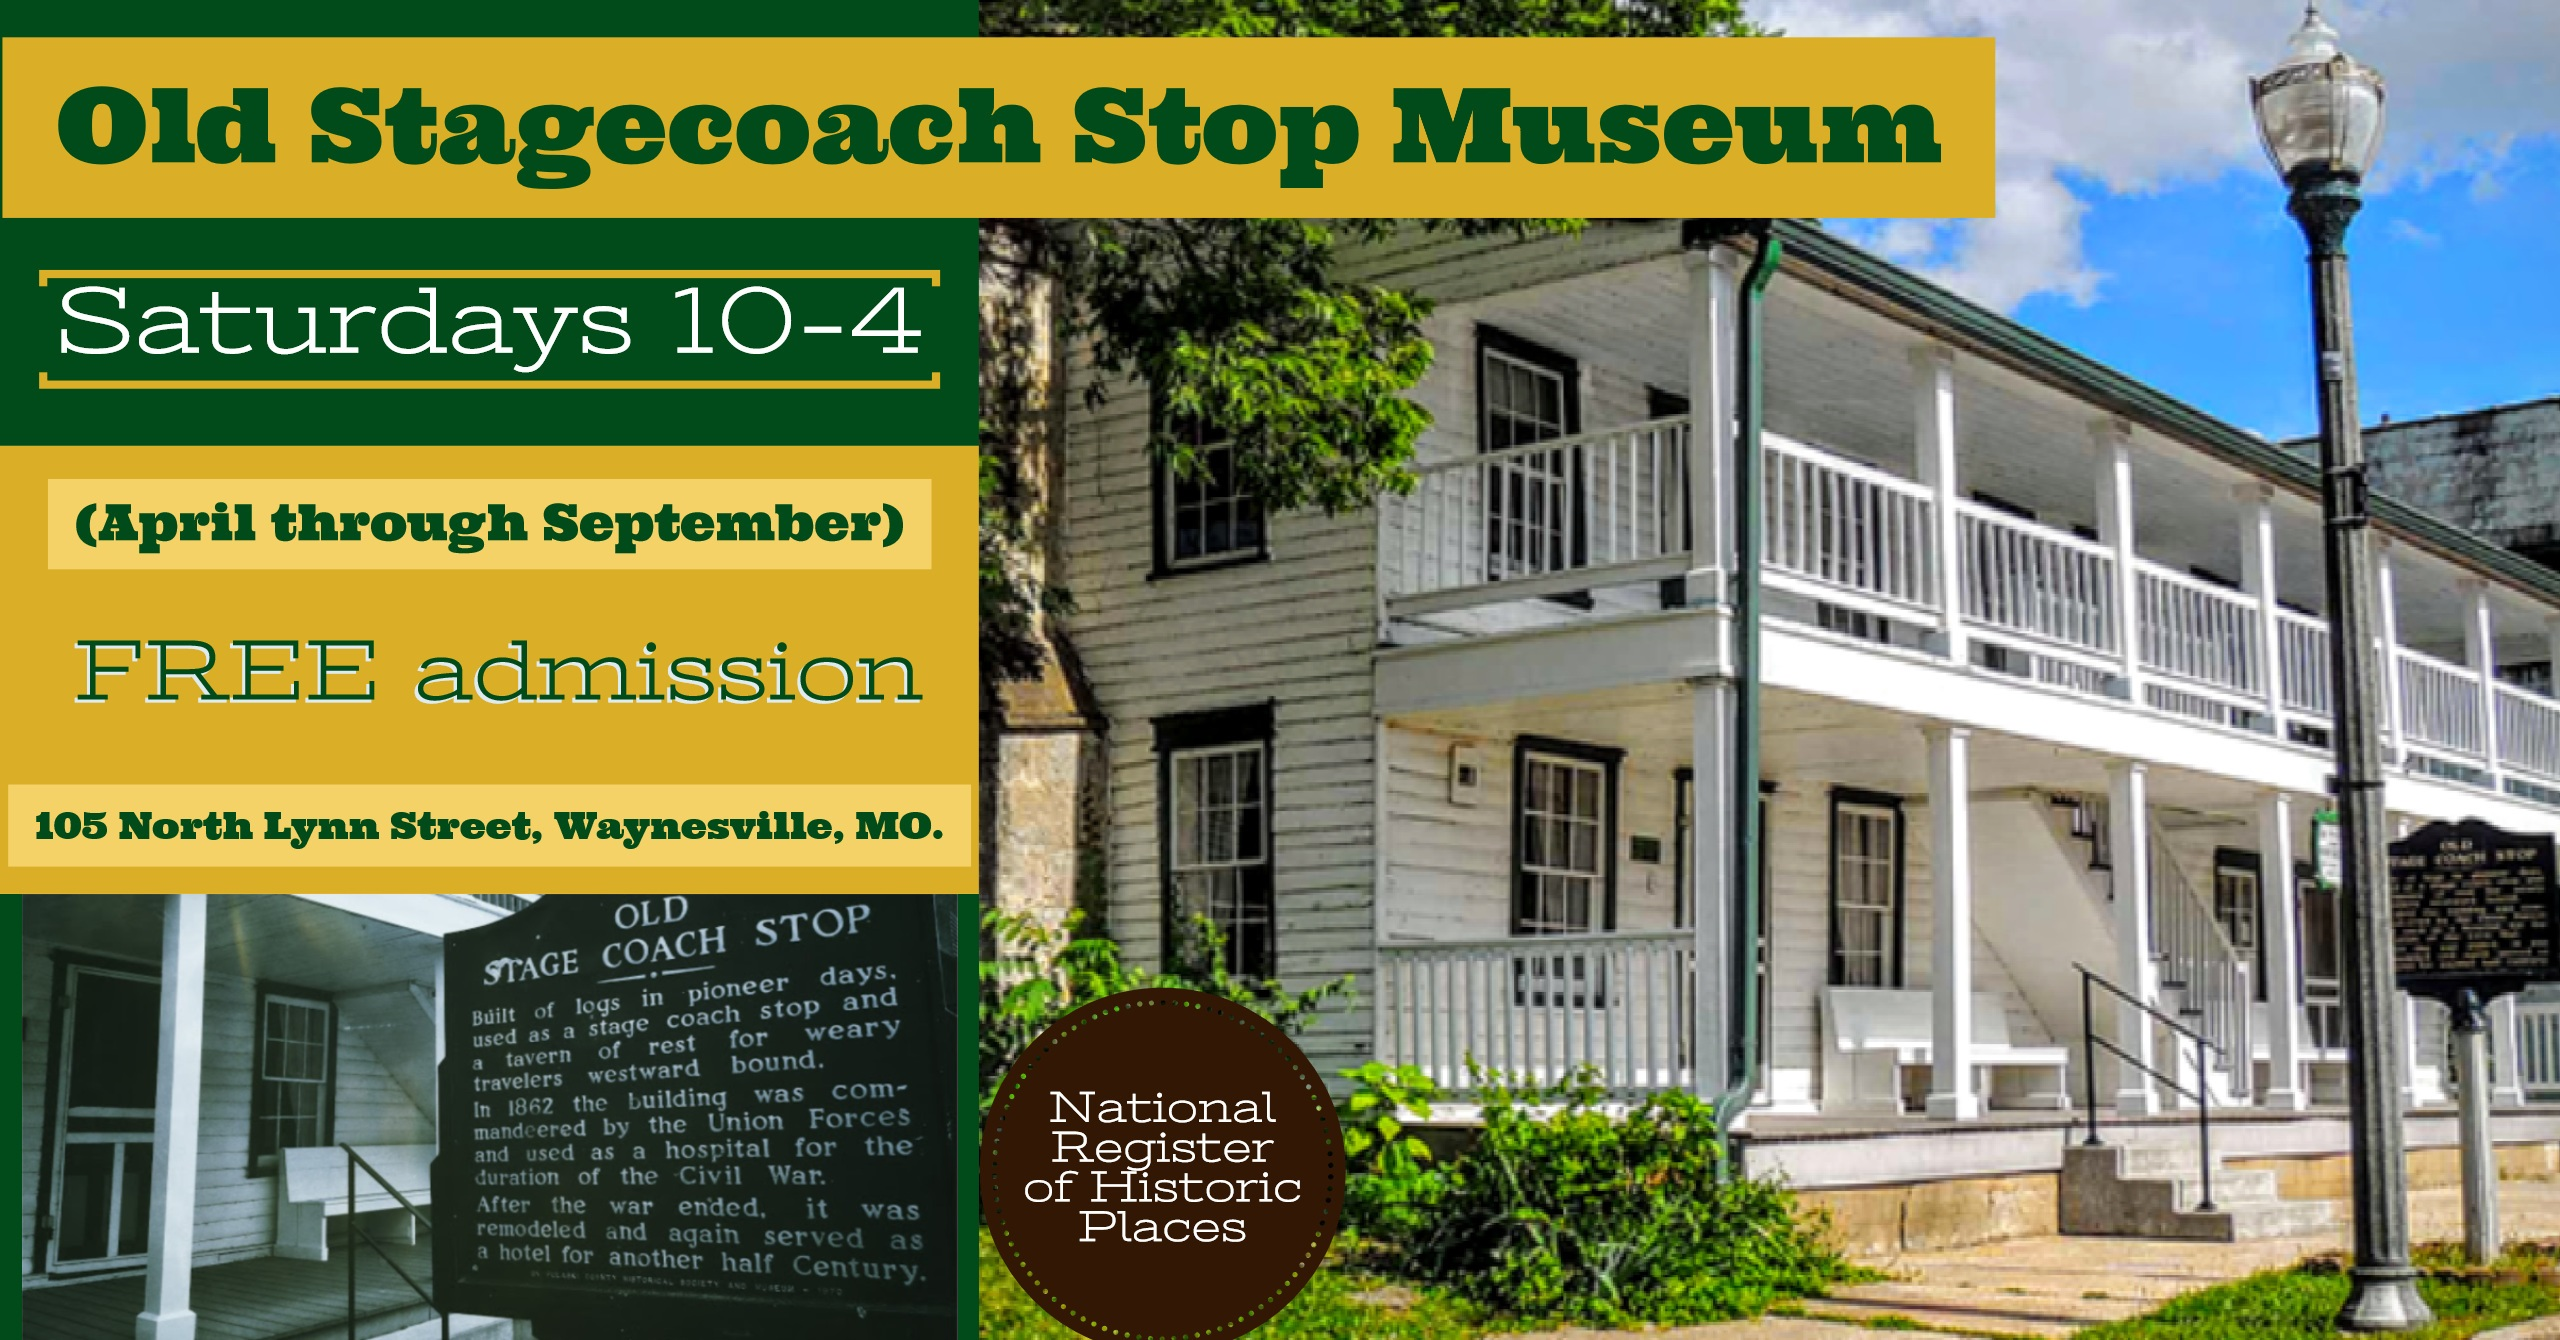 Waynesville's Old Stagecoach Stop is on the National Register of Historic Places